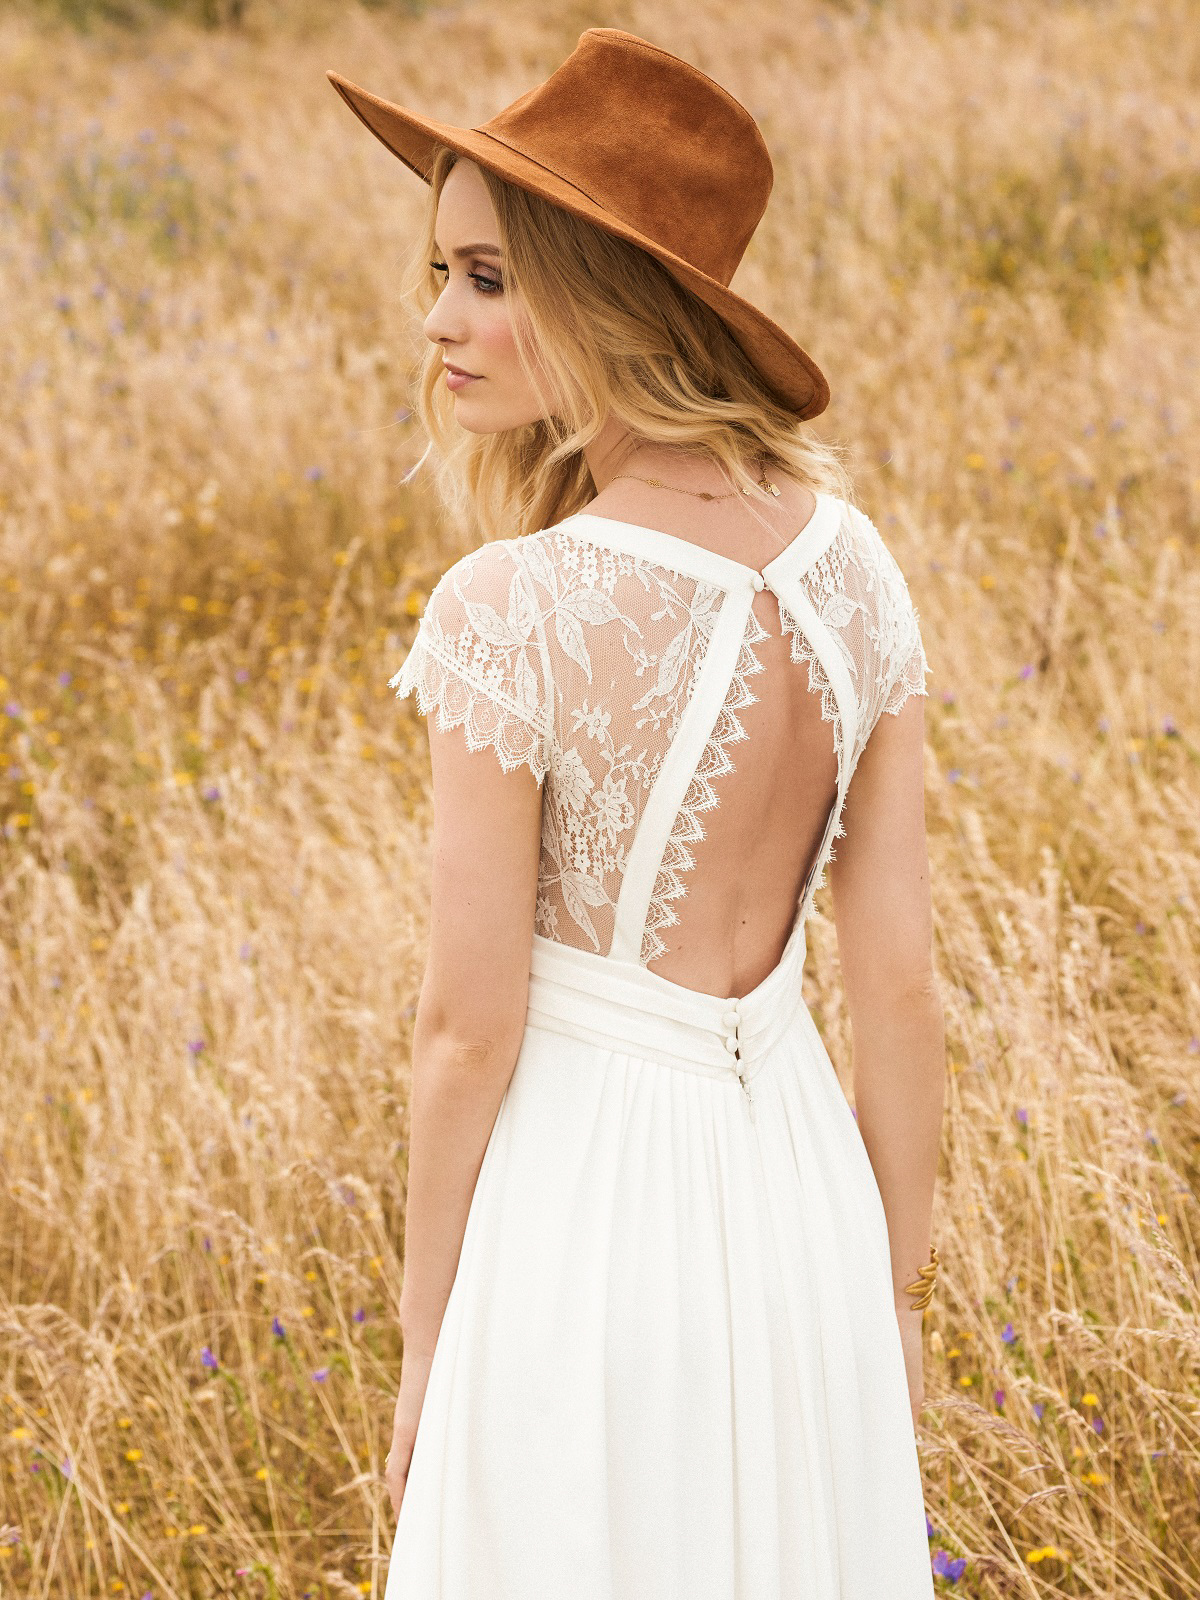 Rembo Styling - Bohemian Chic Bridal Style in the New 2017 ...